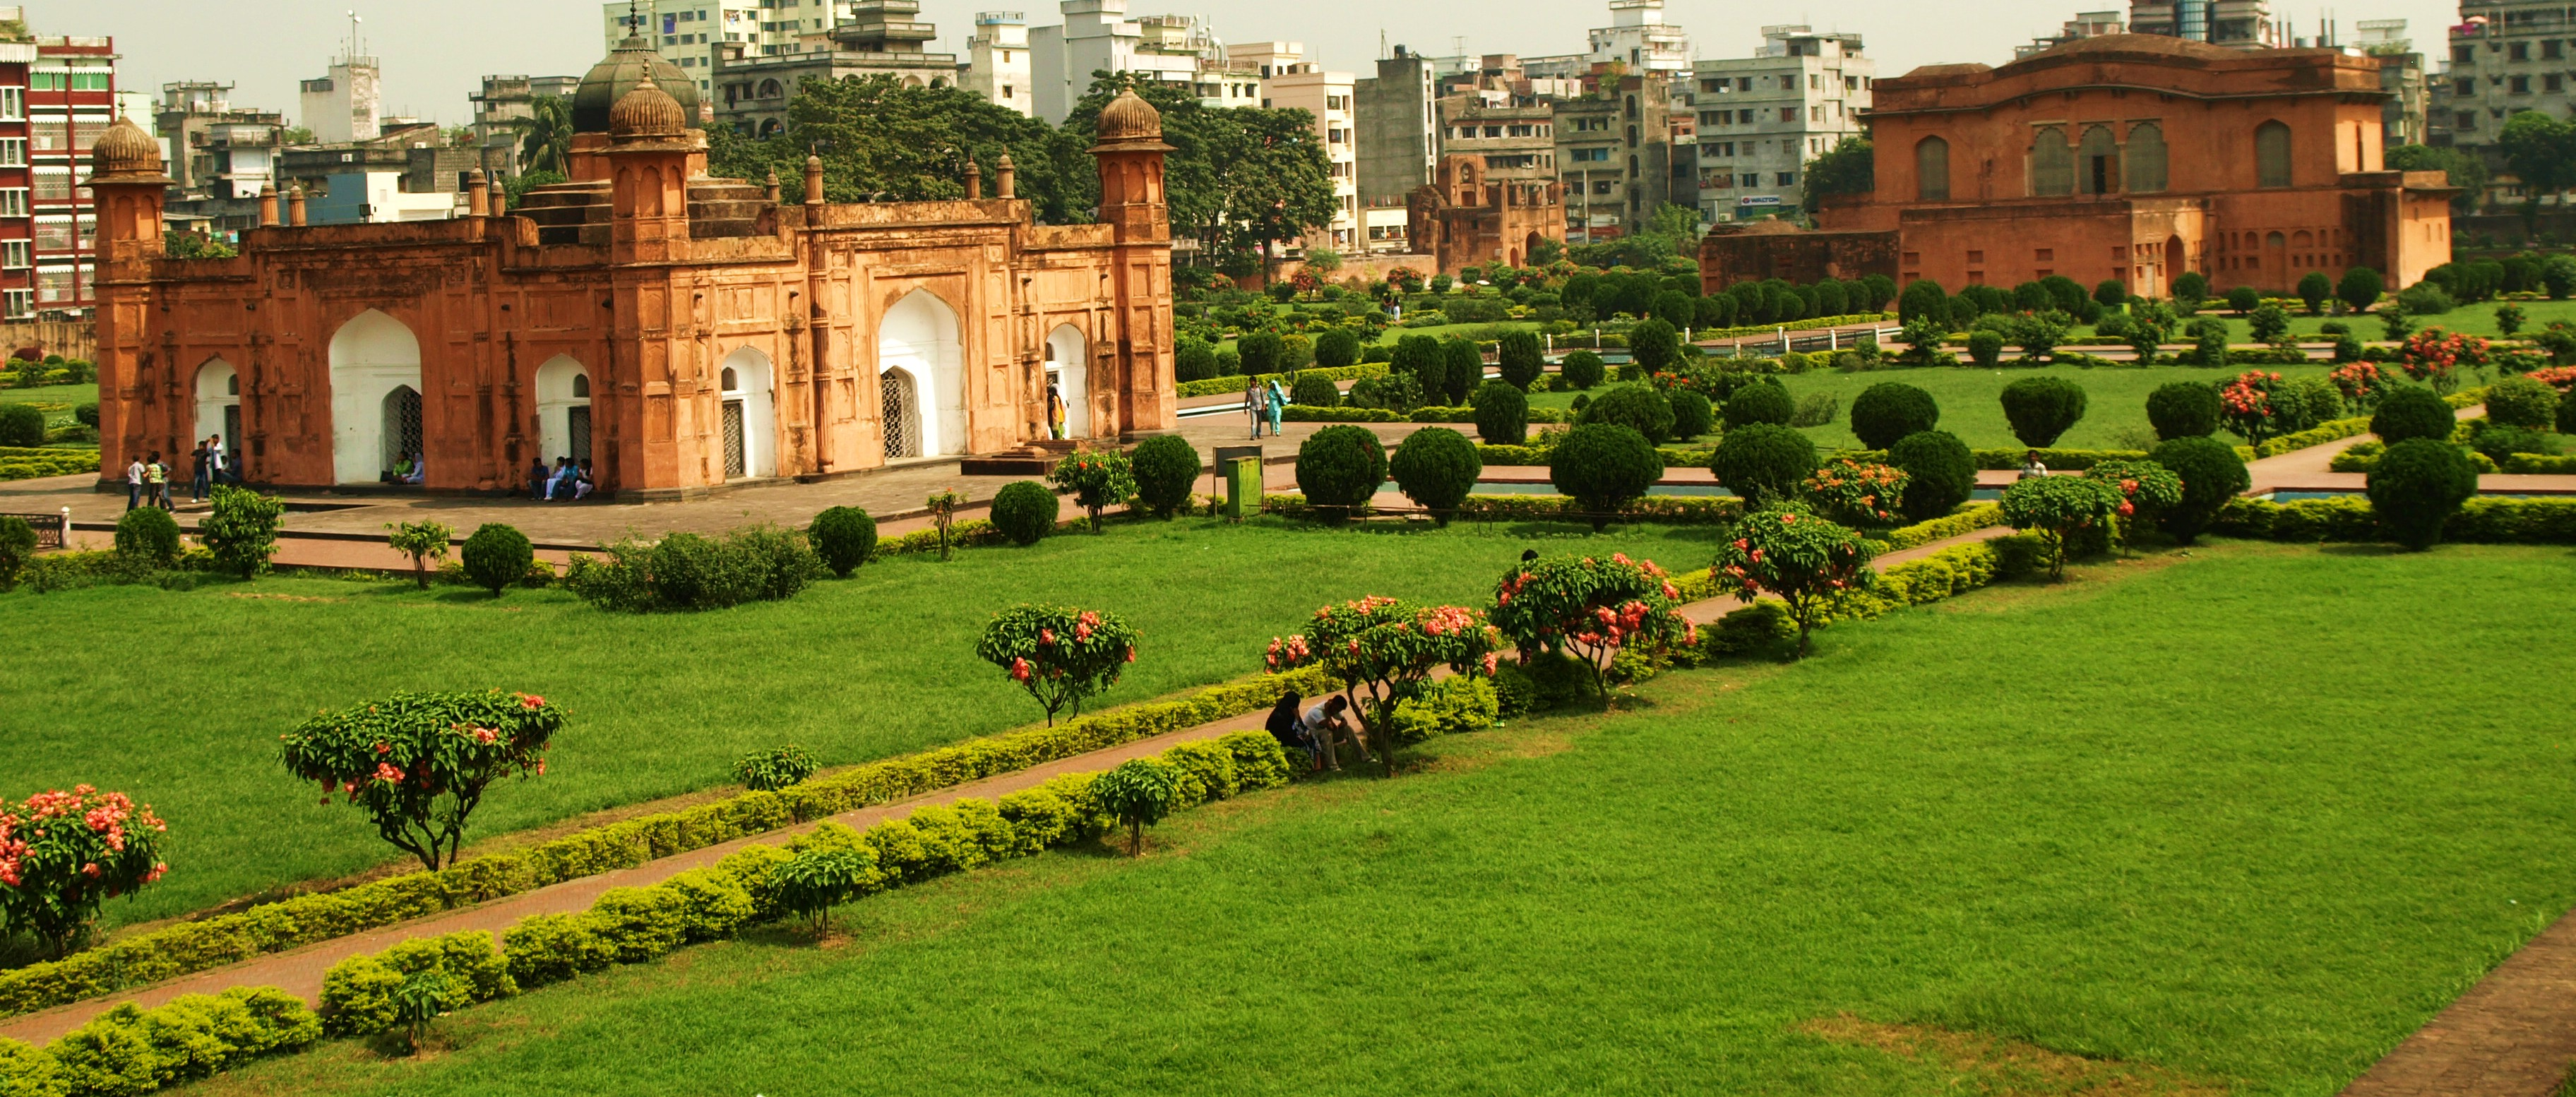 Lalbagh Fort in Dhaka, Bangladesh : islam